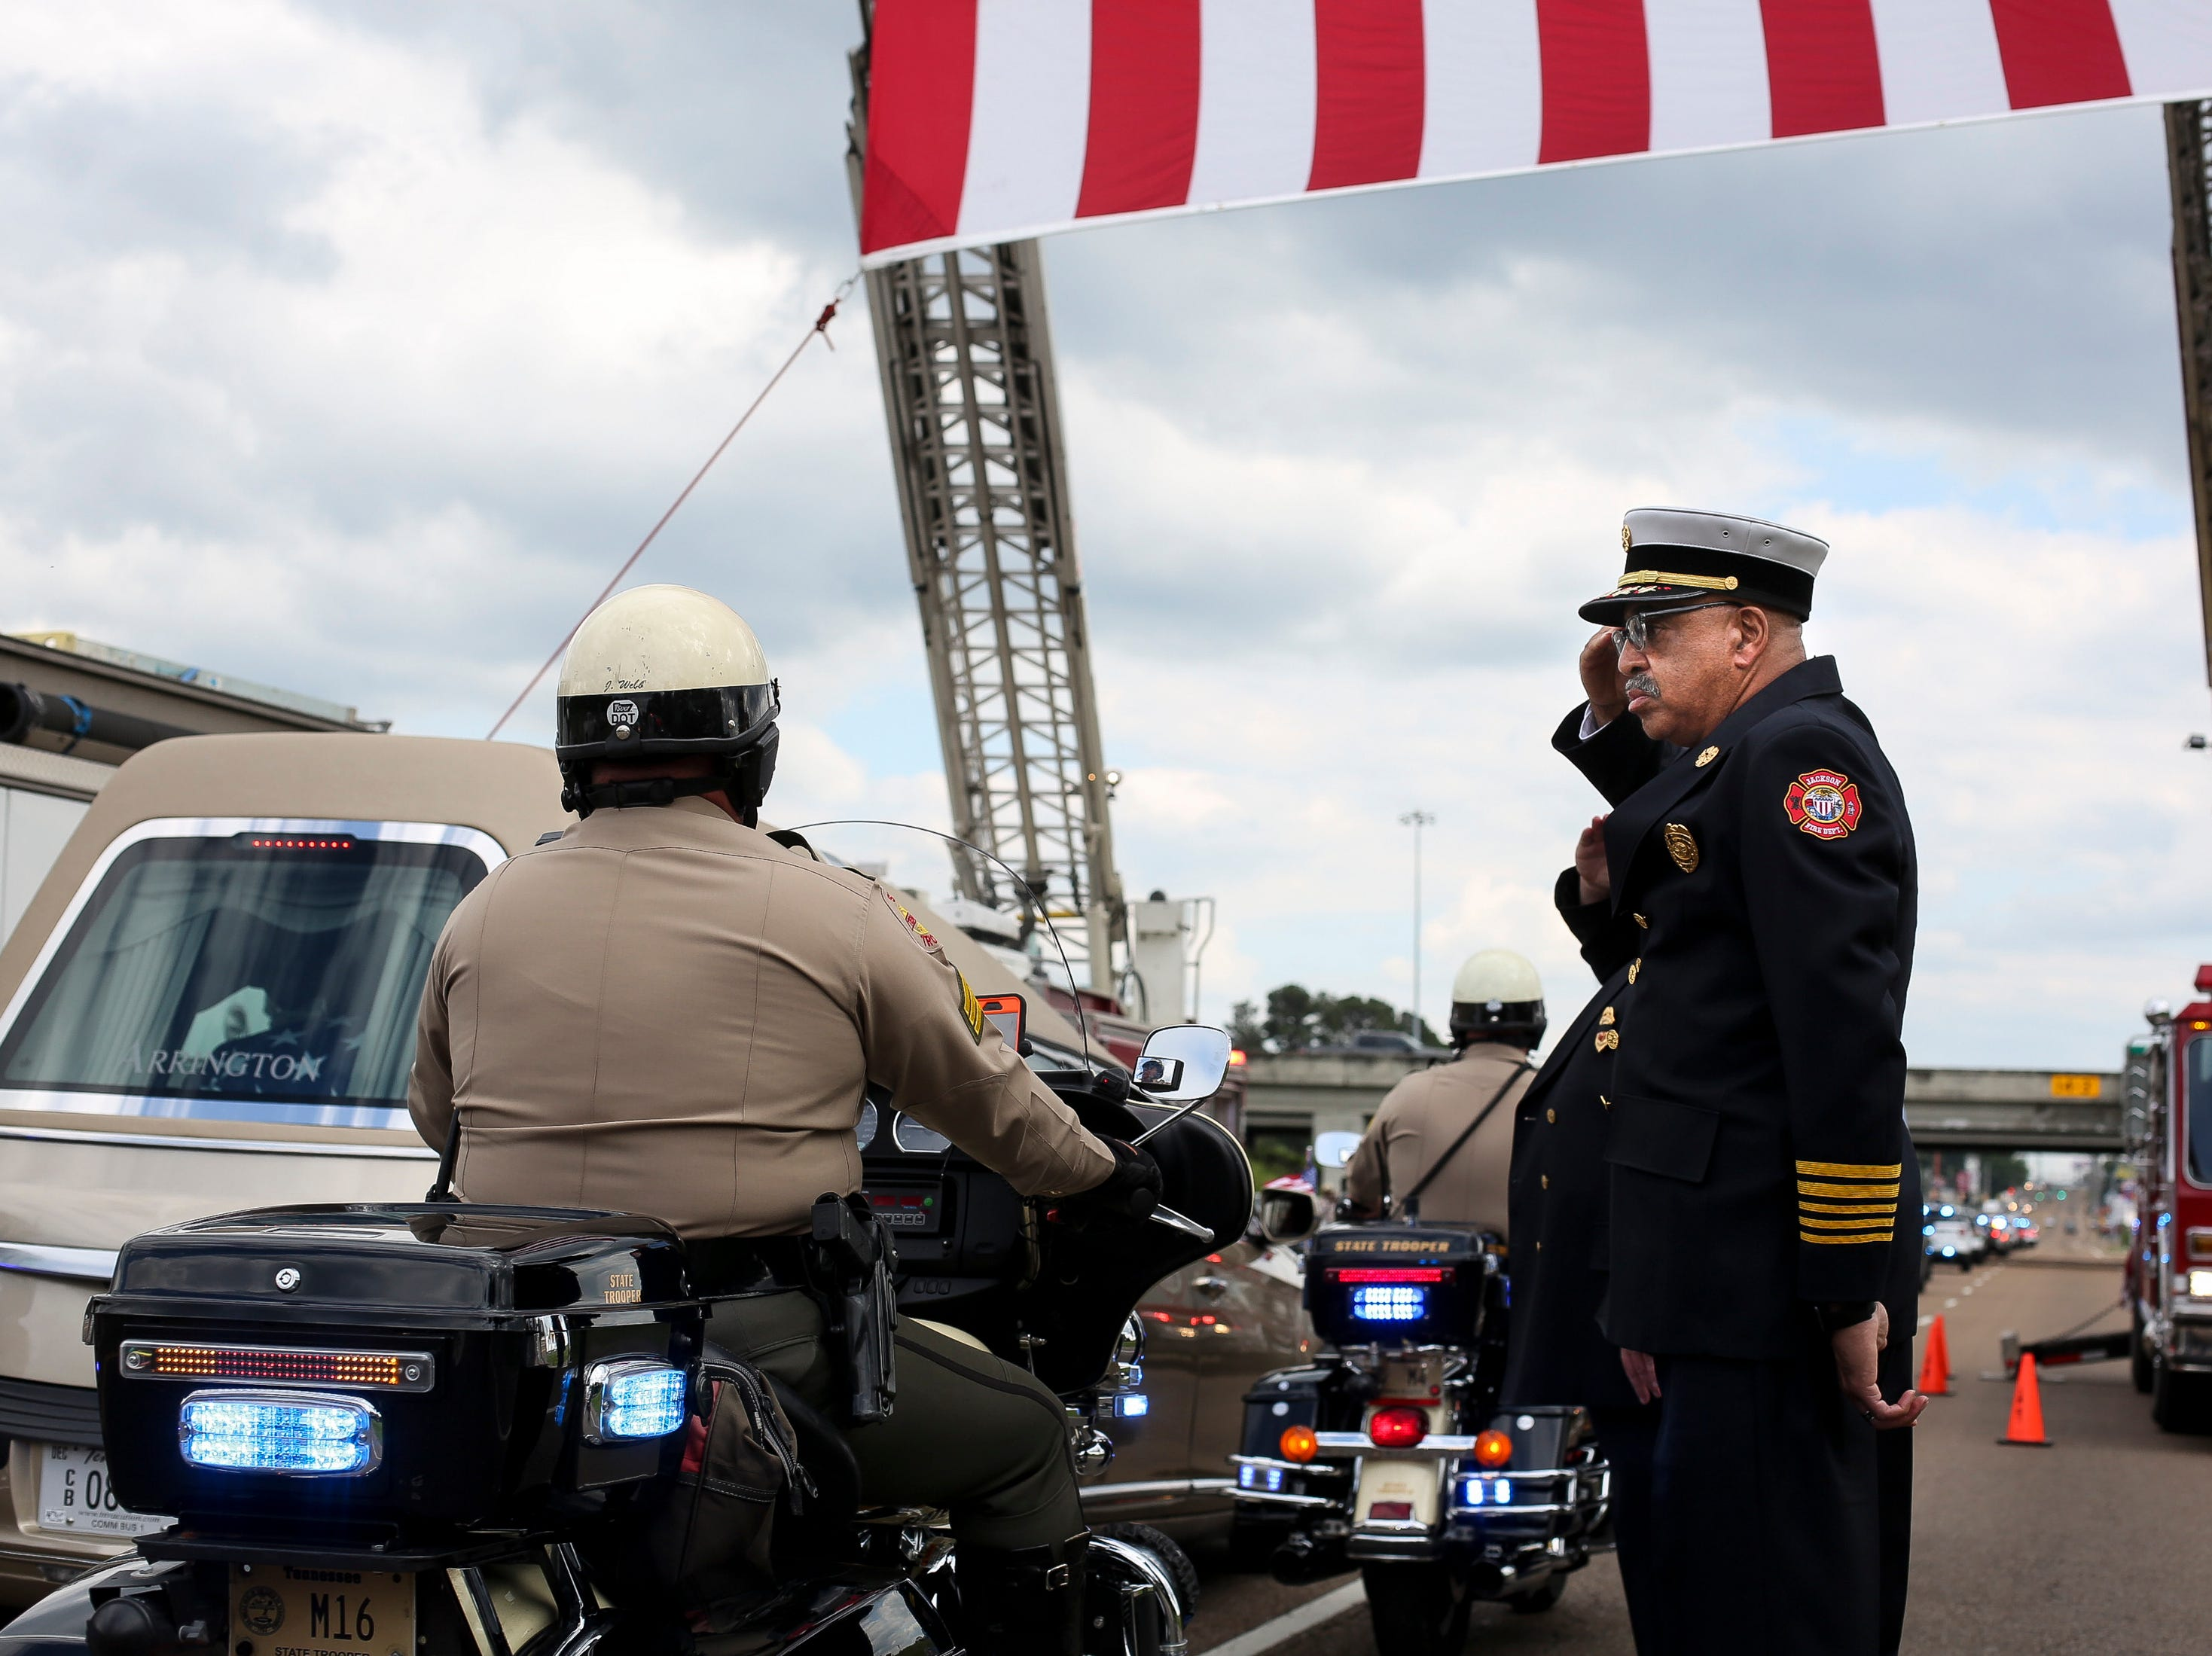 Jackson Fire Department Chief Darryl Samuels salutes the hearse as the funeral procession for Tennessee State Trooper Matthew Gatti passes down U.S. Route 45 in Jackson, Tenn., Monday, May 13, 2019. Gatti died in the line of duty in an accident while responding to a car fire on I-40 in Madison County on May 6.